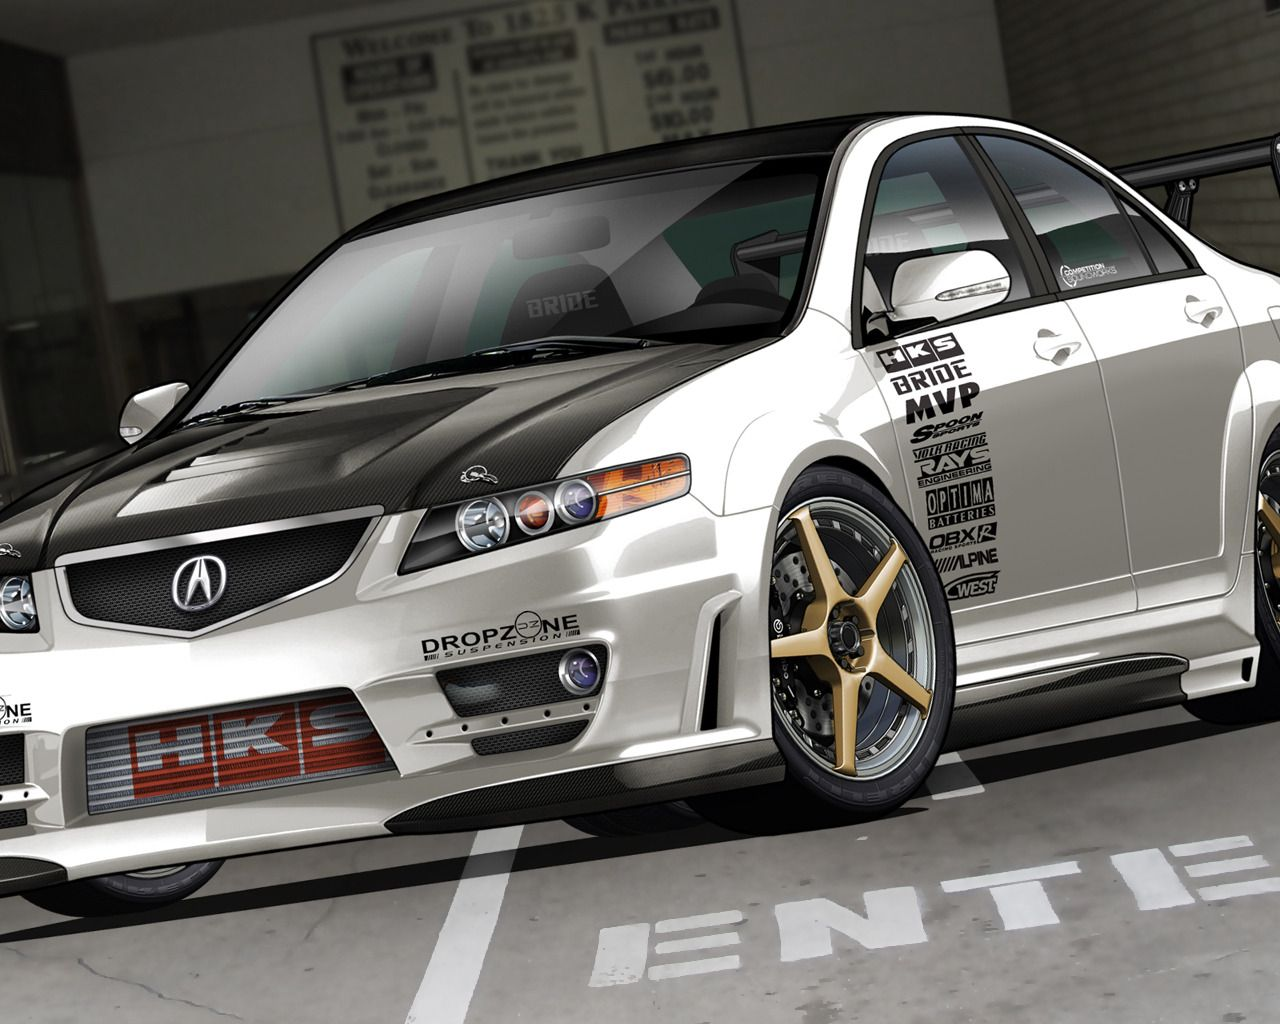 1280x1024 - Acura TSX Wallpapers 34